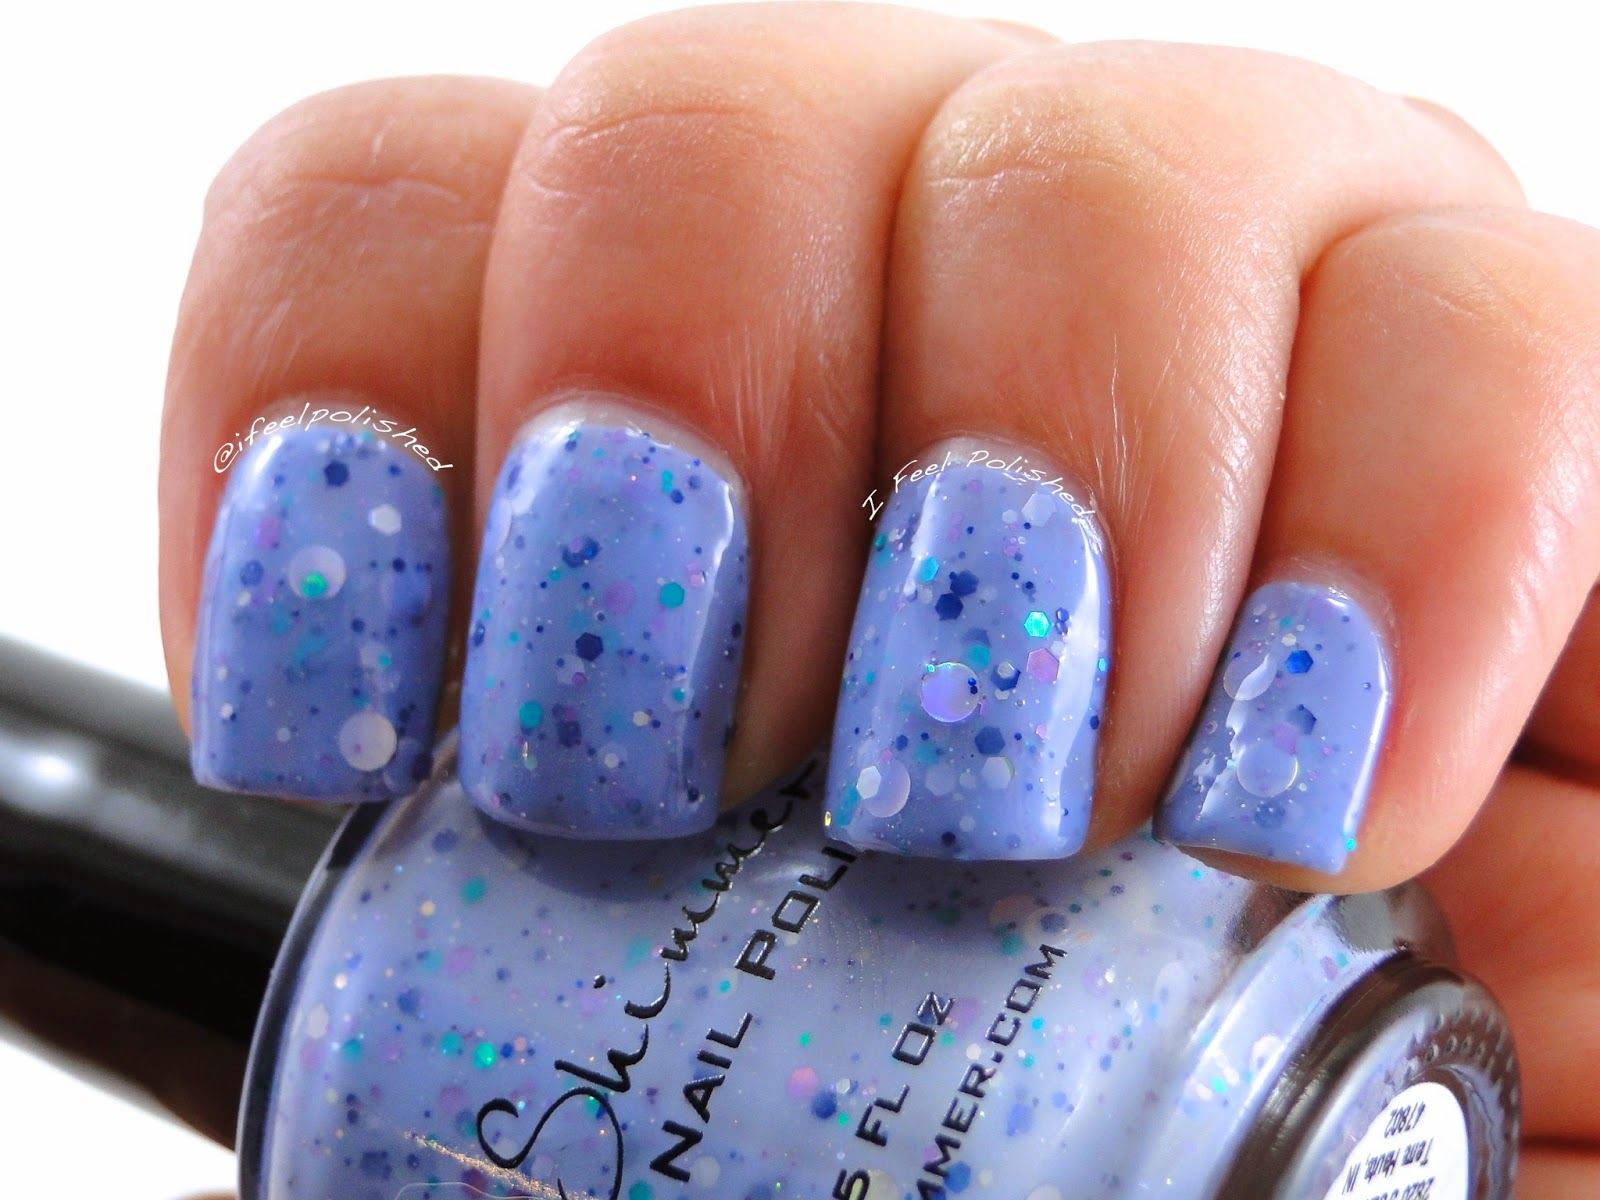 KBShimmer Periwinkle in Time